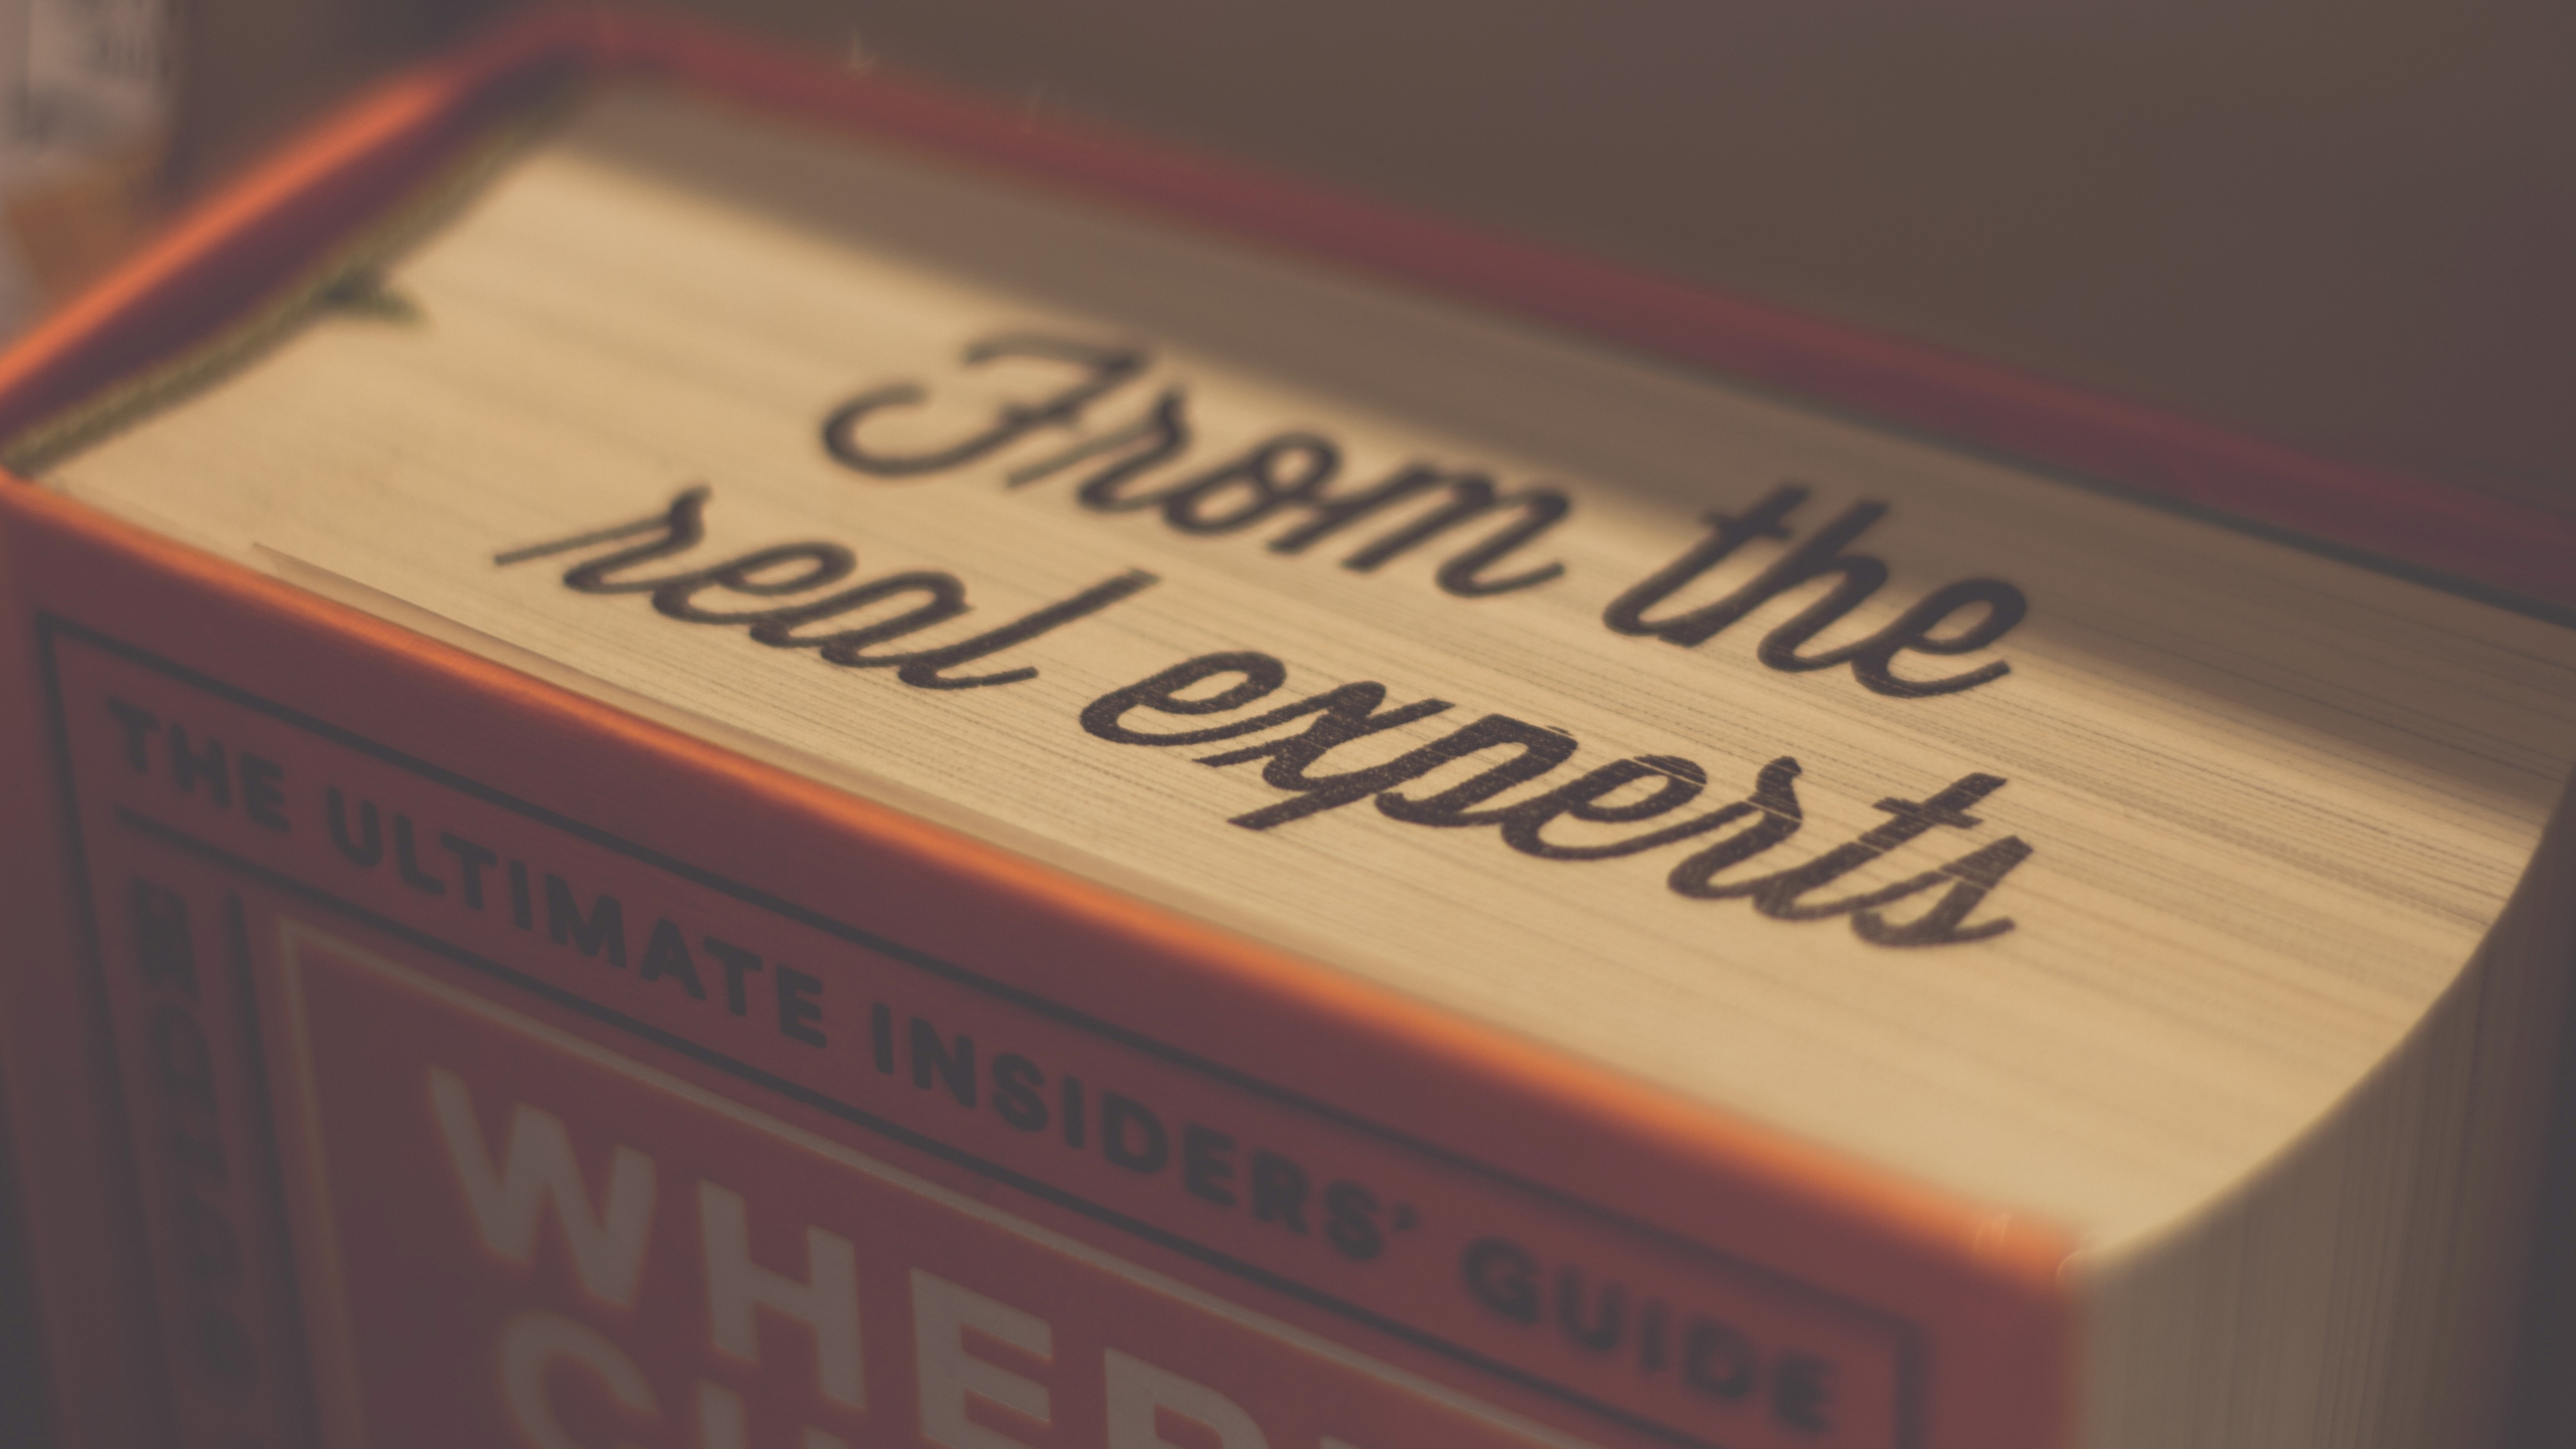 Book with the word experts written on it